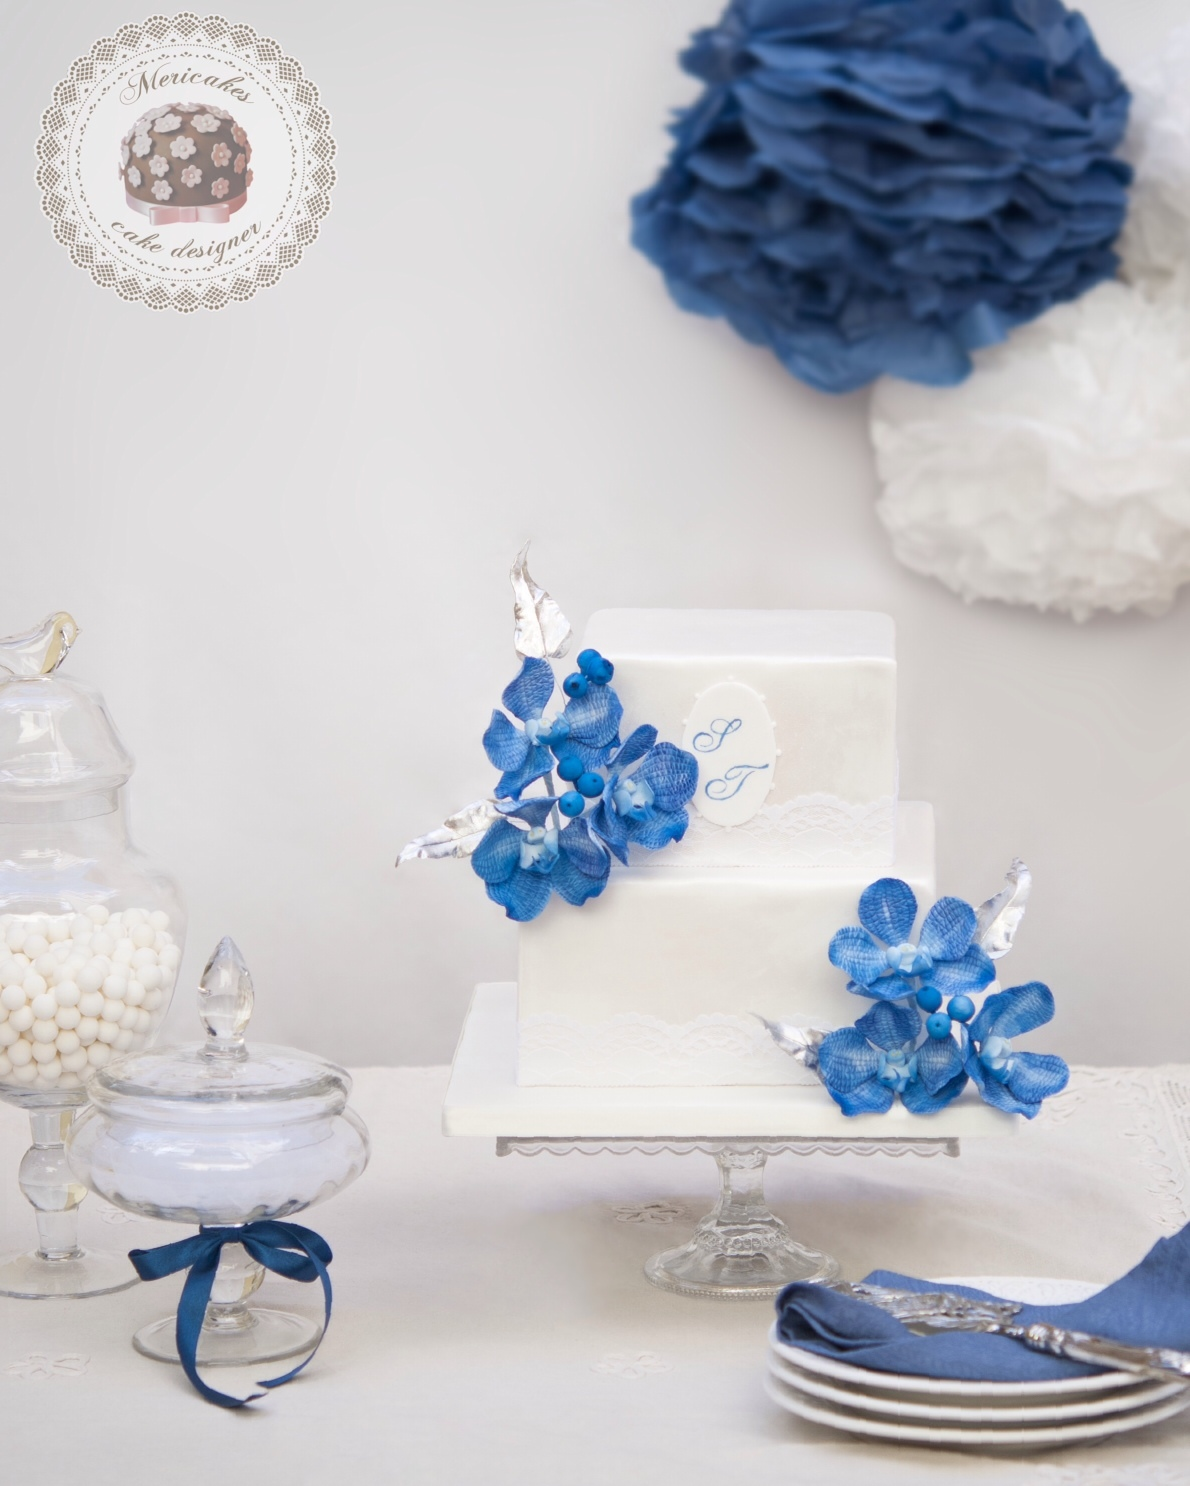 White with blue sugar flowers